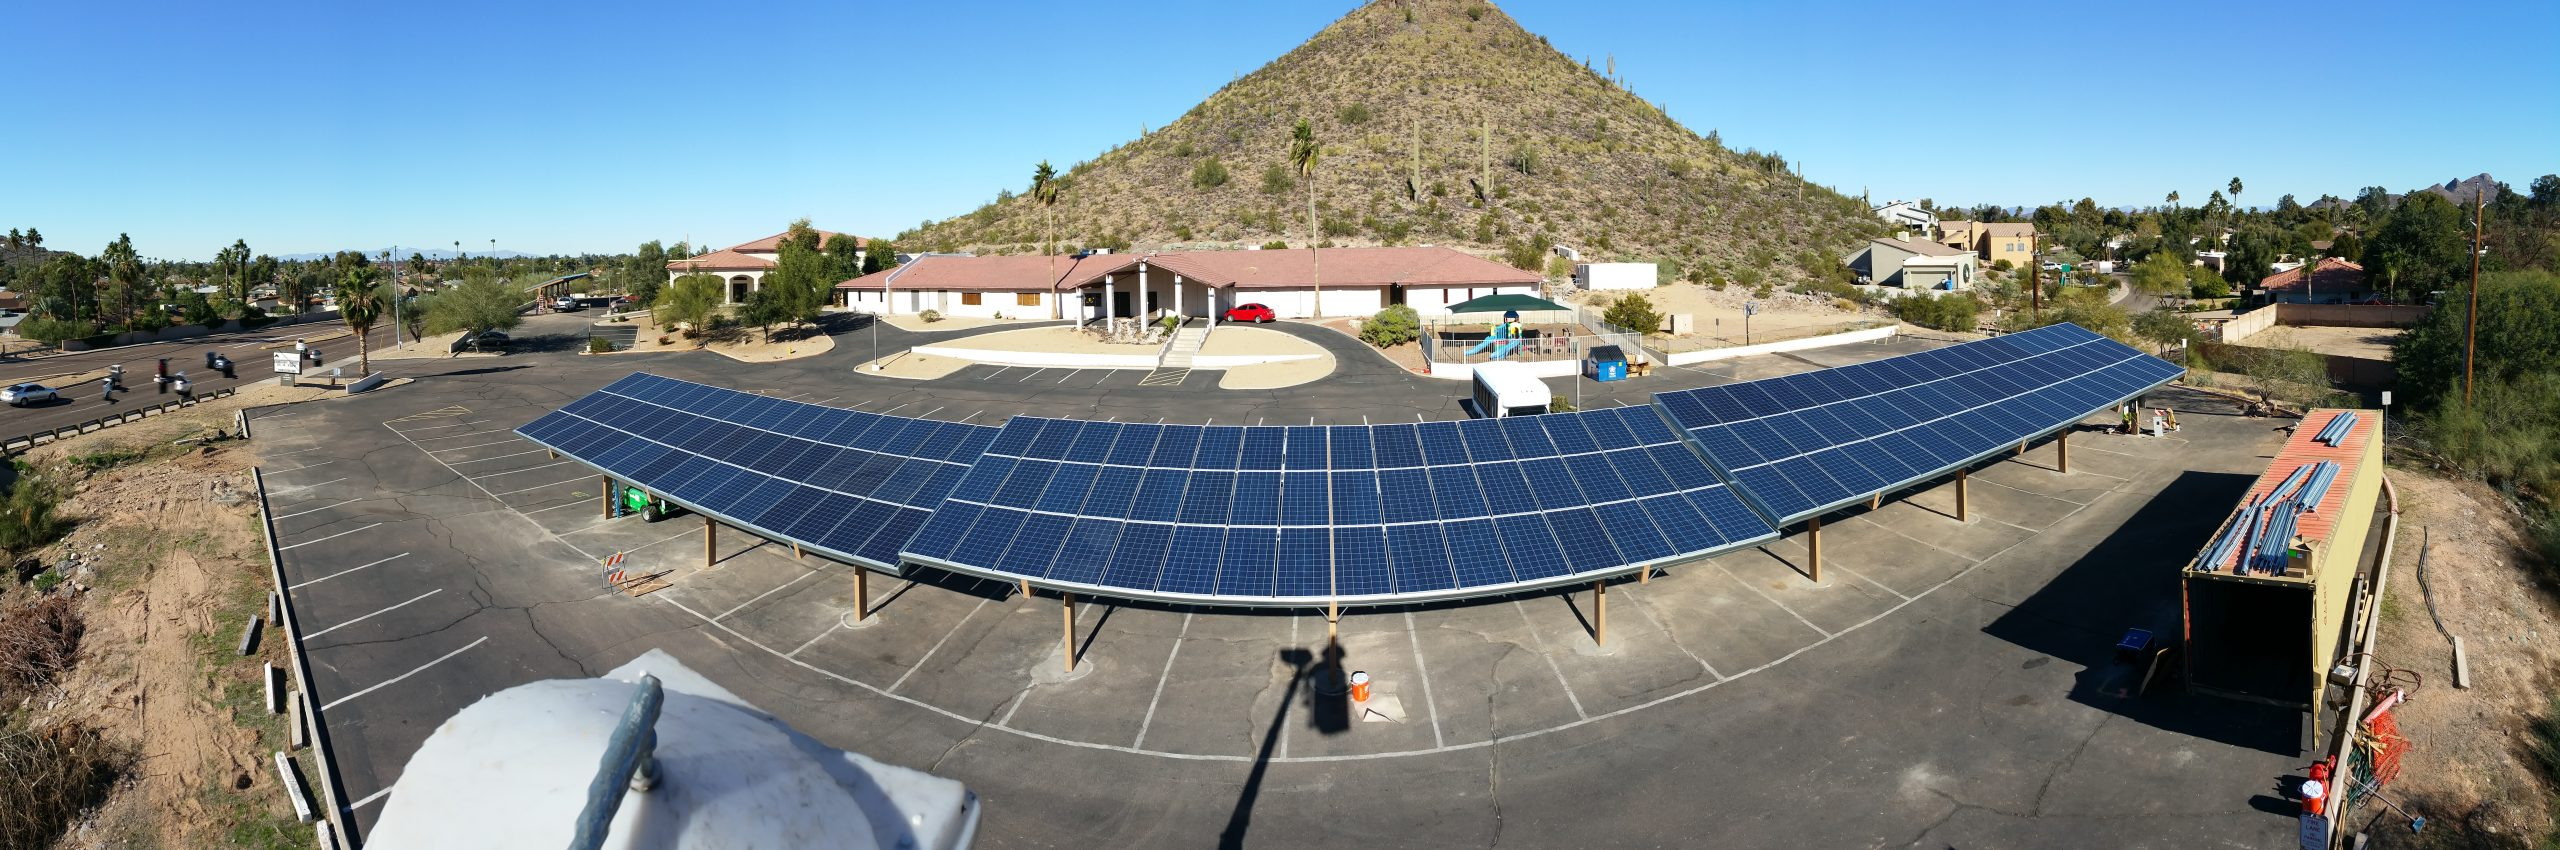 Solar panels on covered parking